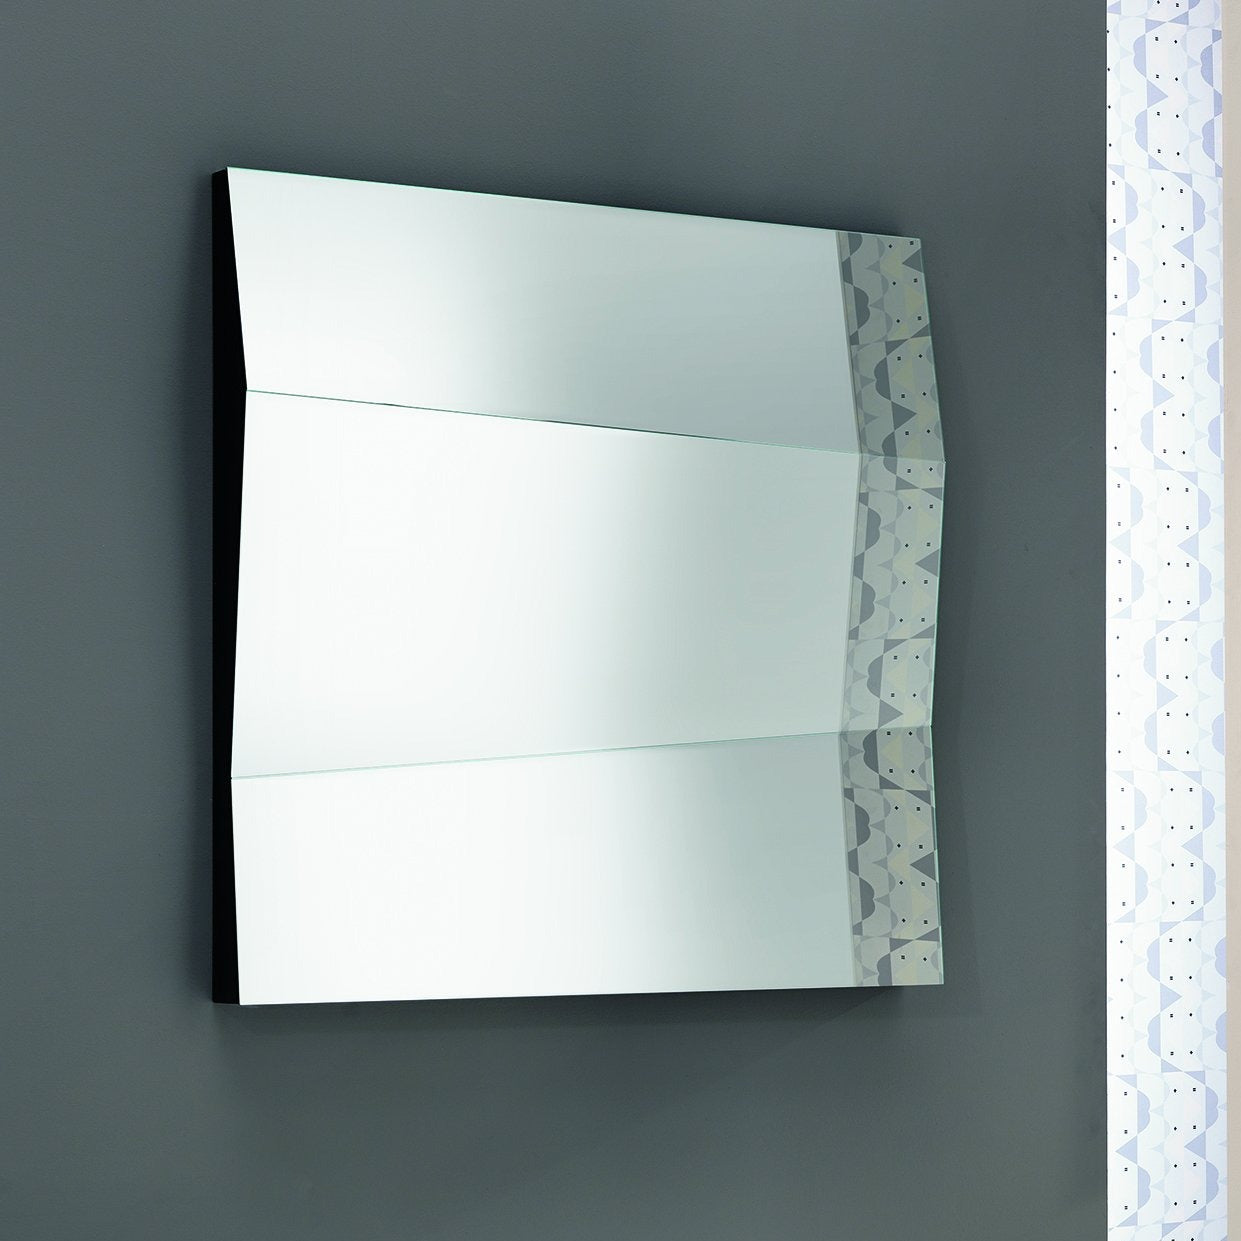 Size : 98 x 9 x h 98 cm. Secondary image shows 2No. mirrors aligned.